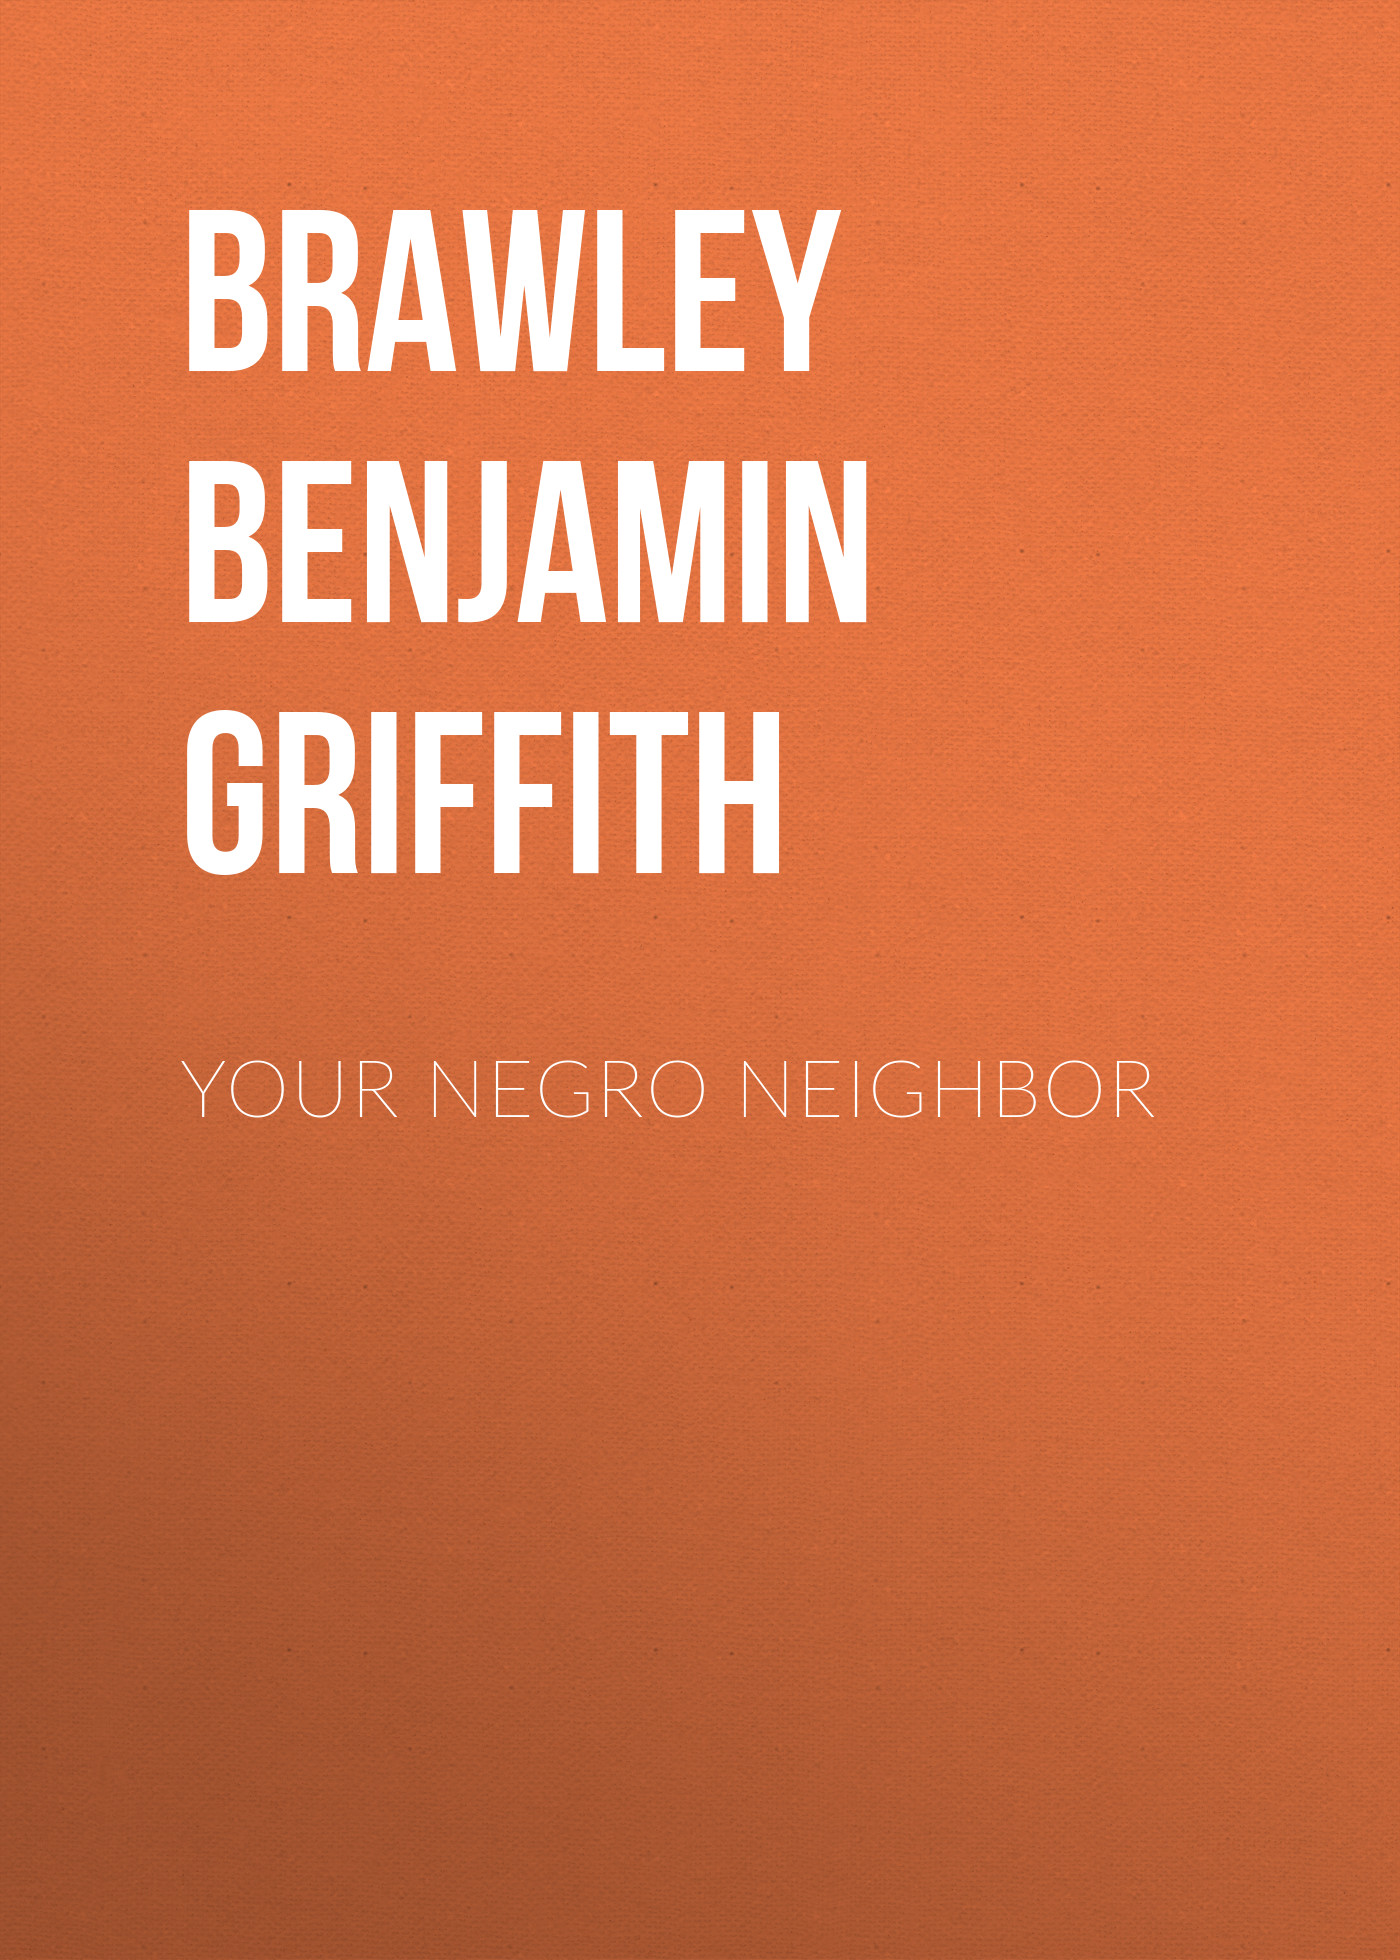 Brawley Benjamin Griffith Your Negro Neighbor becket griffith j myths